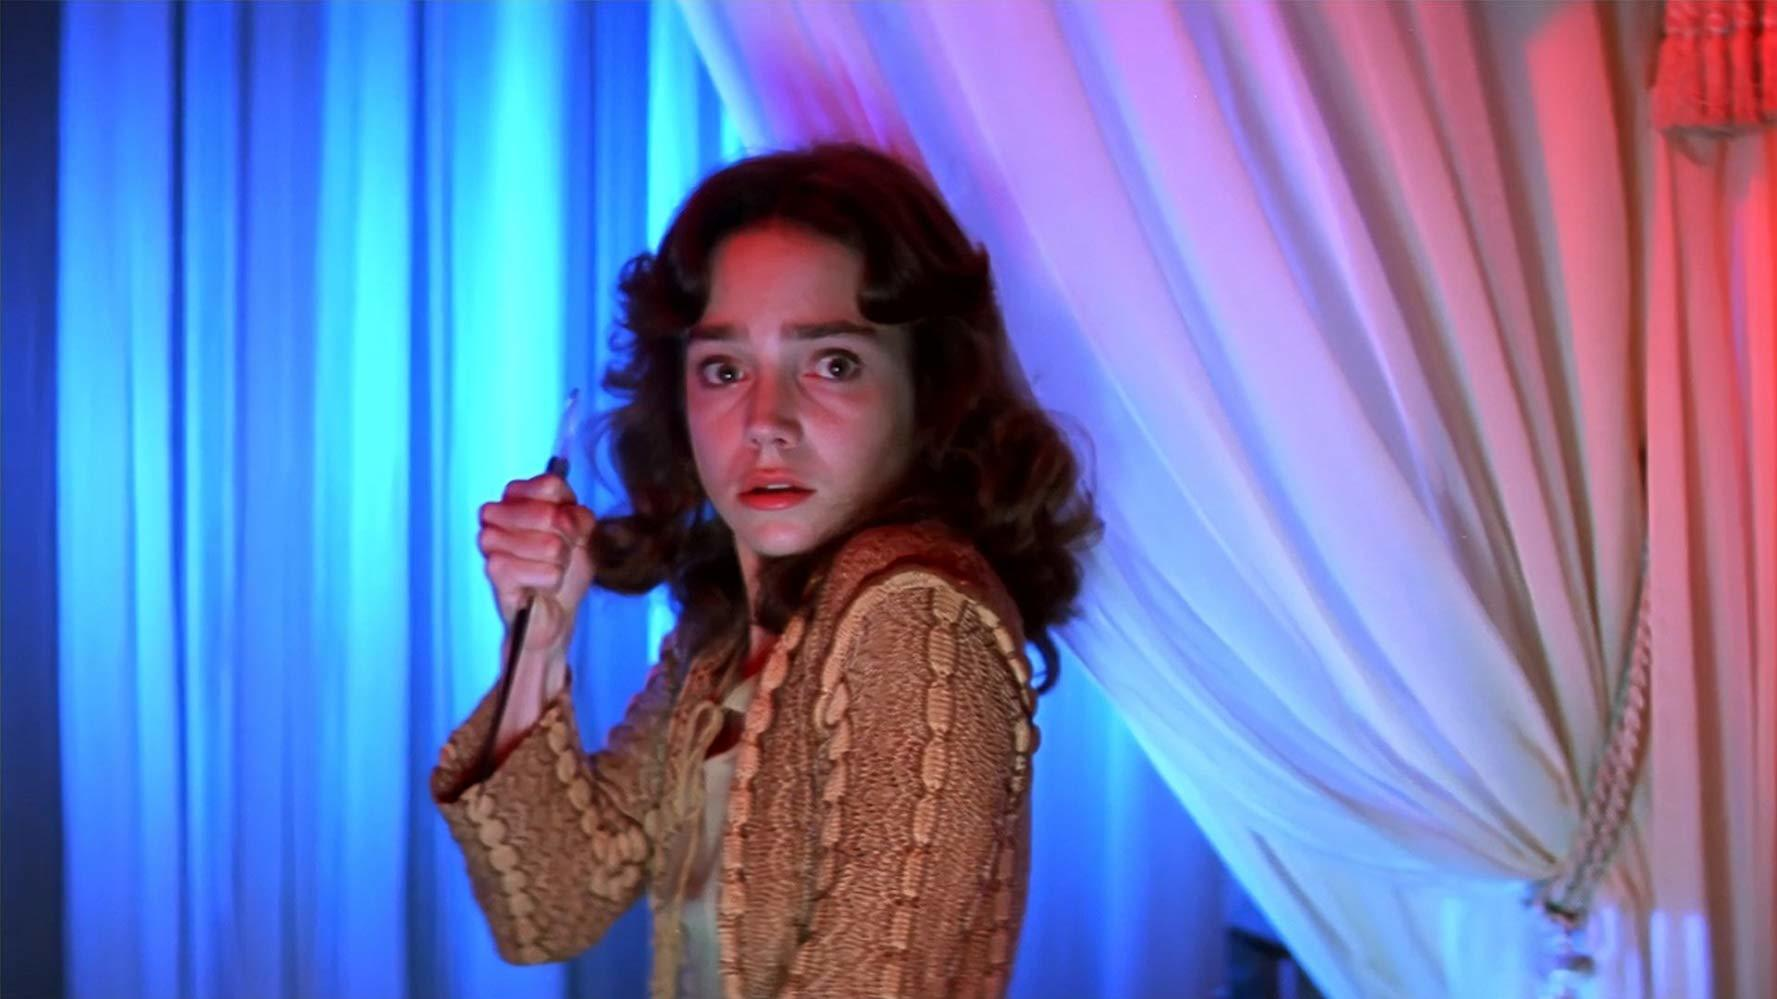 Women holding knife, still from Suspiria (1977)